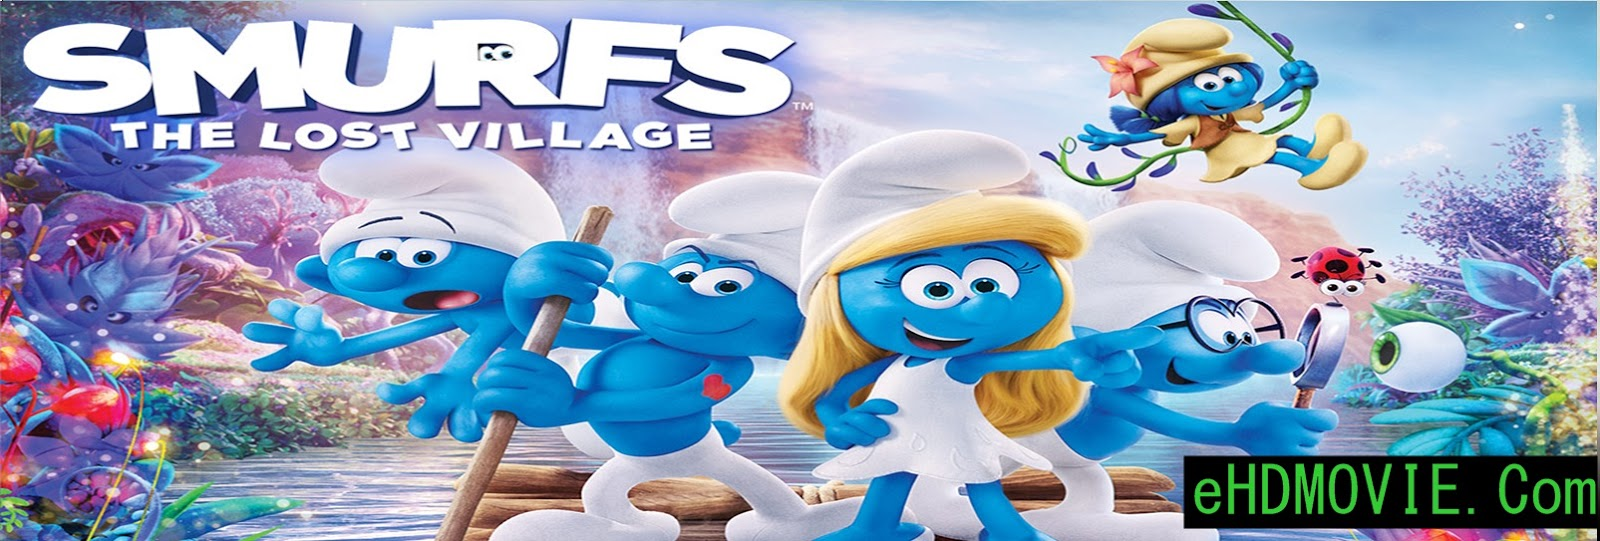 Smurfs: The Lost Village 2017 Full Movie Dual Audio [Hindi – English] 720p - HEVC - 480p ORG BRRip 350MB - 400MB - 900MB ESubs Free Download